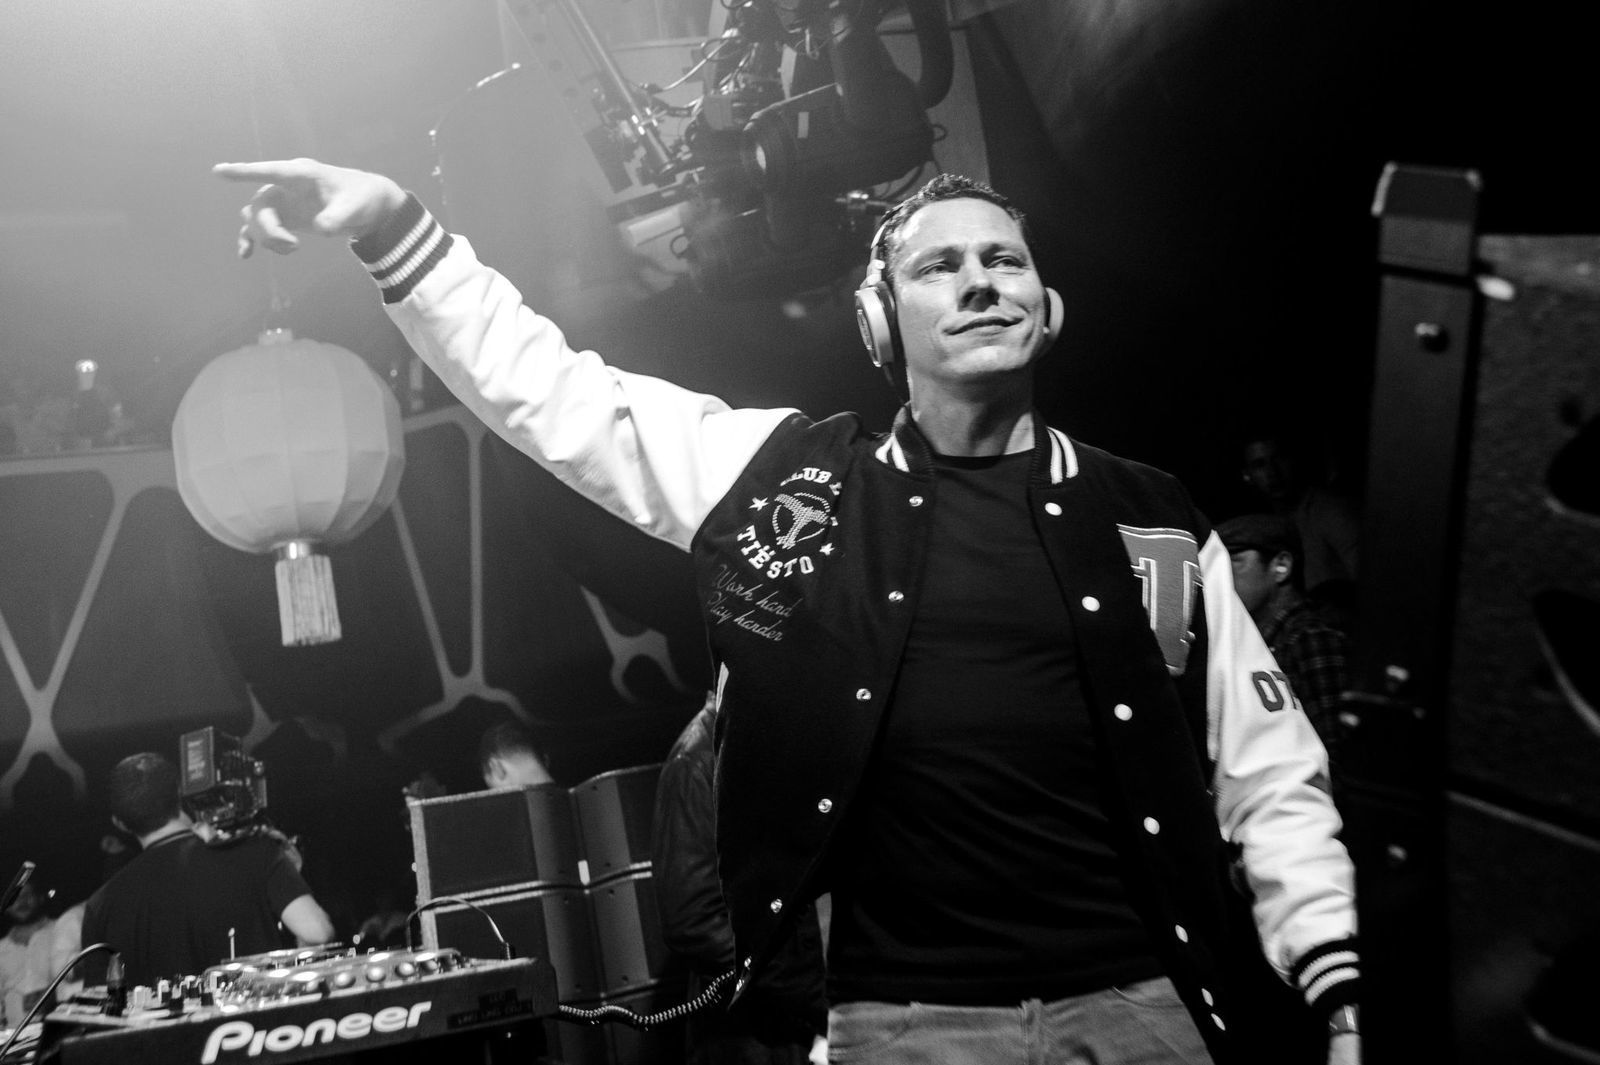 Tiesto debuts at No. 12 on Billboard's Hot Dance/Electronic Songs chart with &quot&#x3B;Wasted,